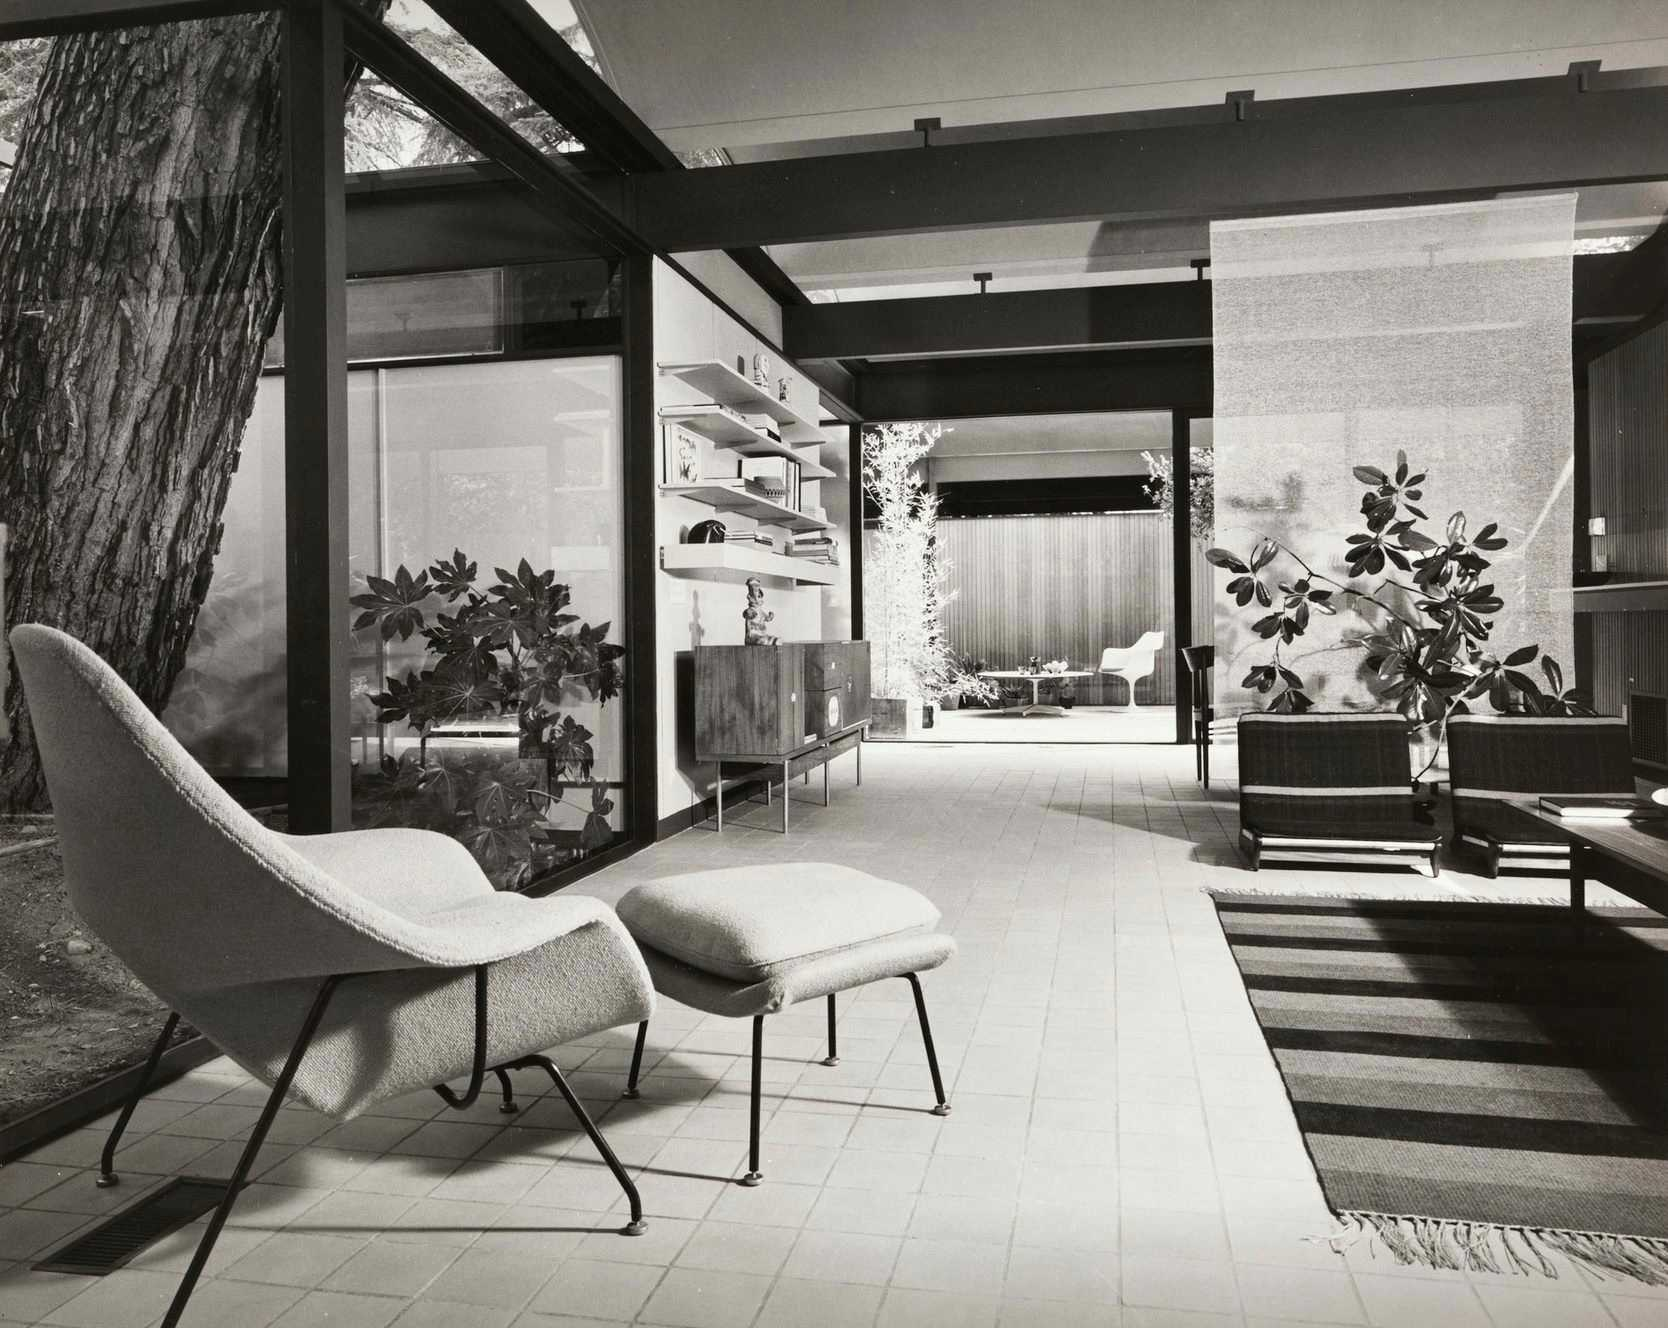 this-is-inside-the-Bass-House-in-Los-Angeles-showing-the-inside-living-room-and-use-of-mid-century-modern-furniture